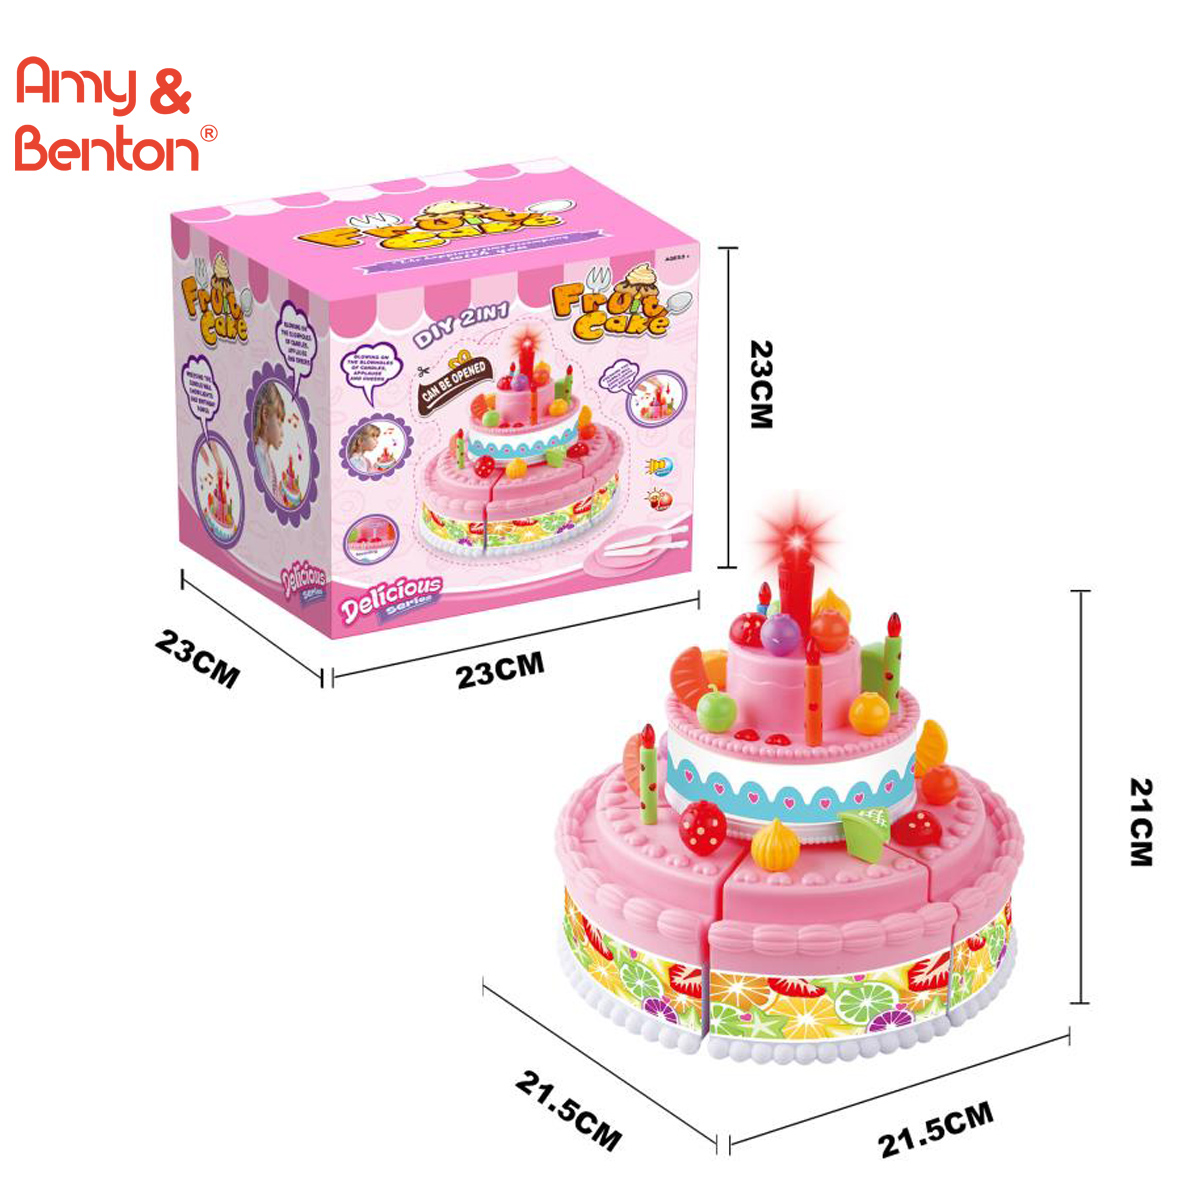 Astonishing Kids Birthday Cake Toy For Baby Toddlers With Counting Candles Funny Birthday Cards Online Aeocydamsfinfo